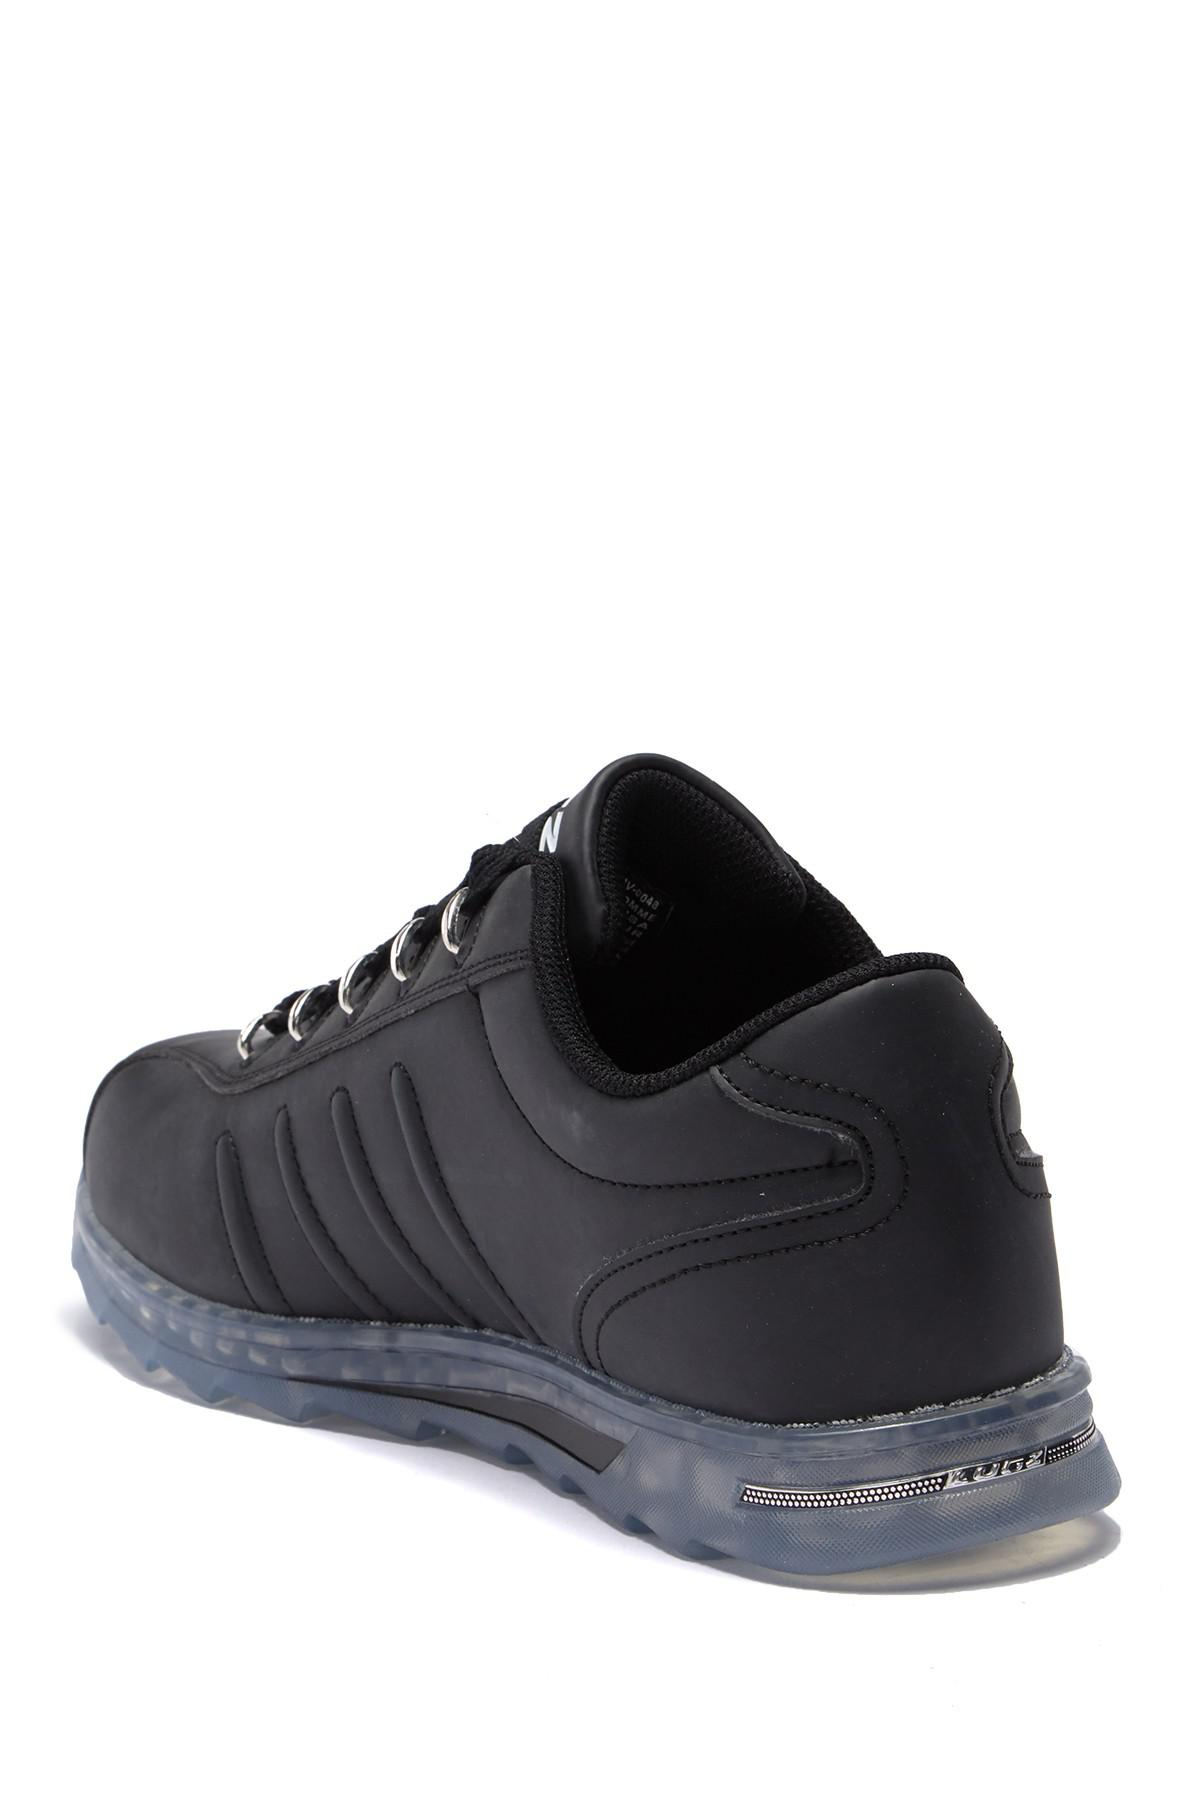 4308216a9ac Lyst - Lugz Changeover Ii Ice Sneaker in Black for Men